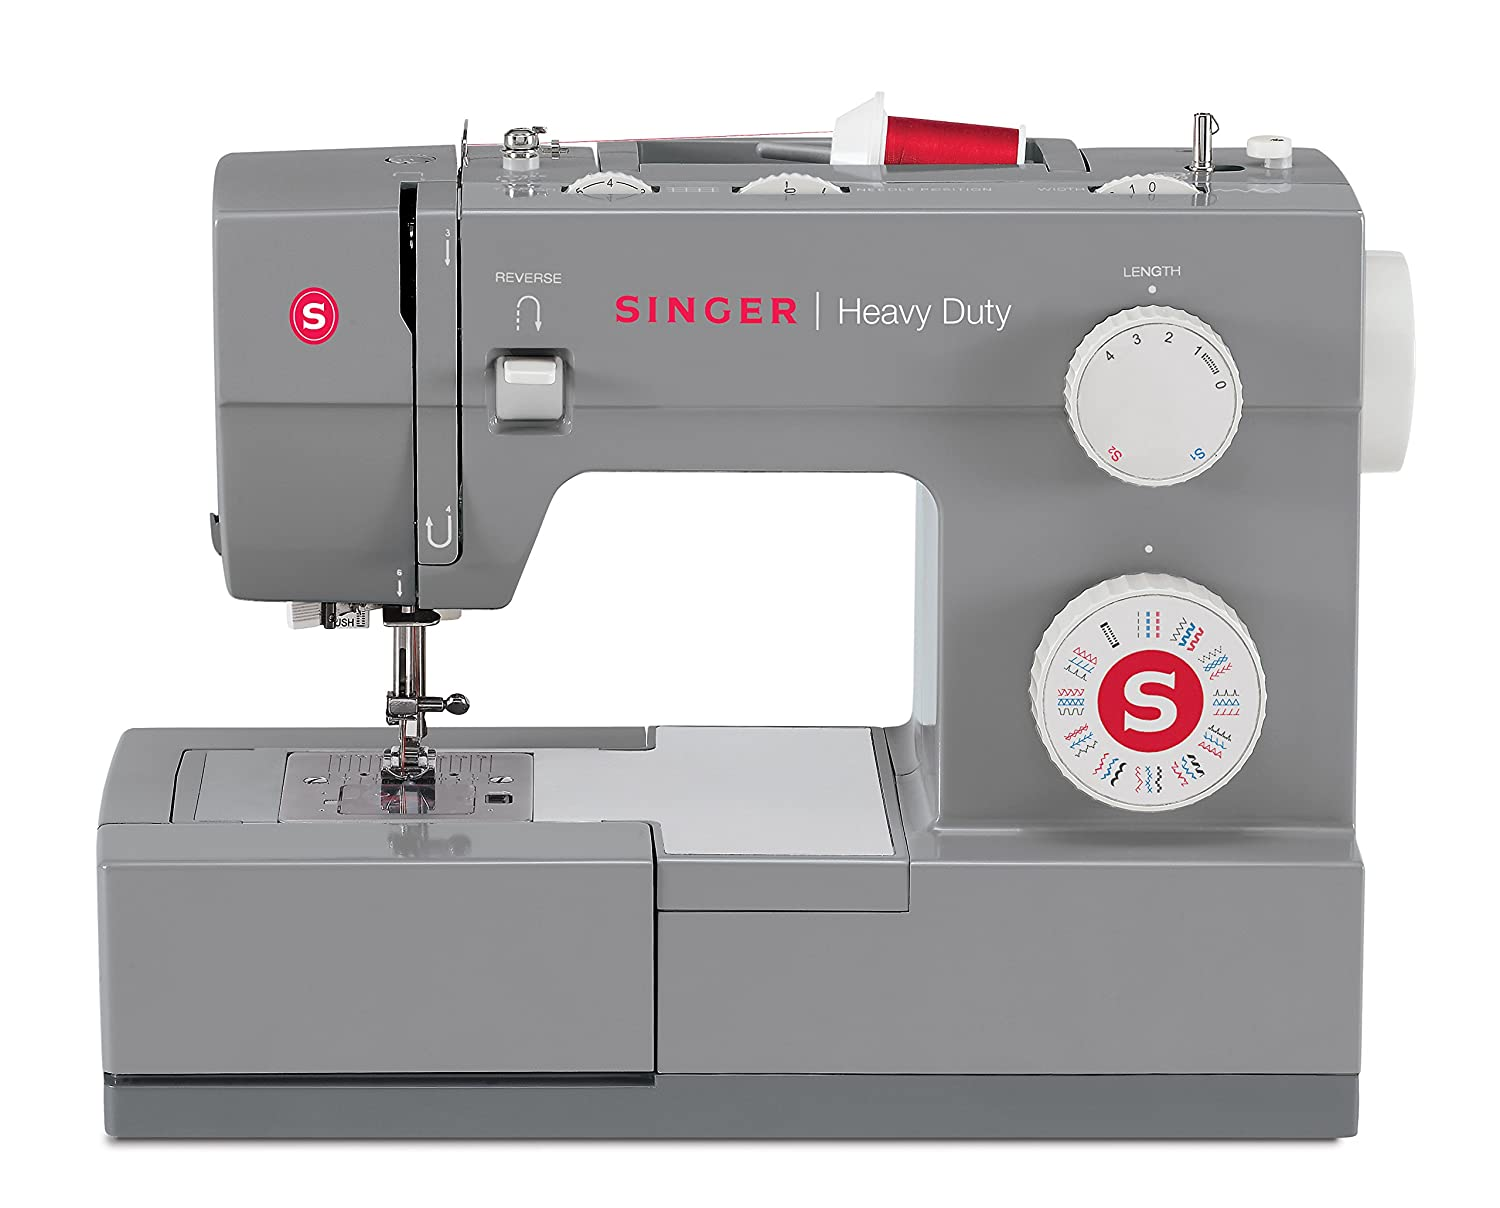 Top 10 Best Heavy Duty Sewing Machine Reviews in 2020 5